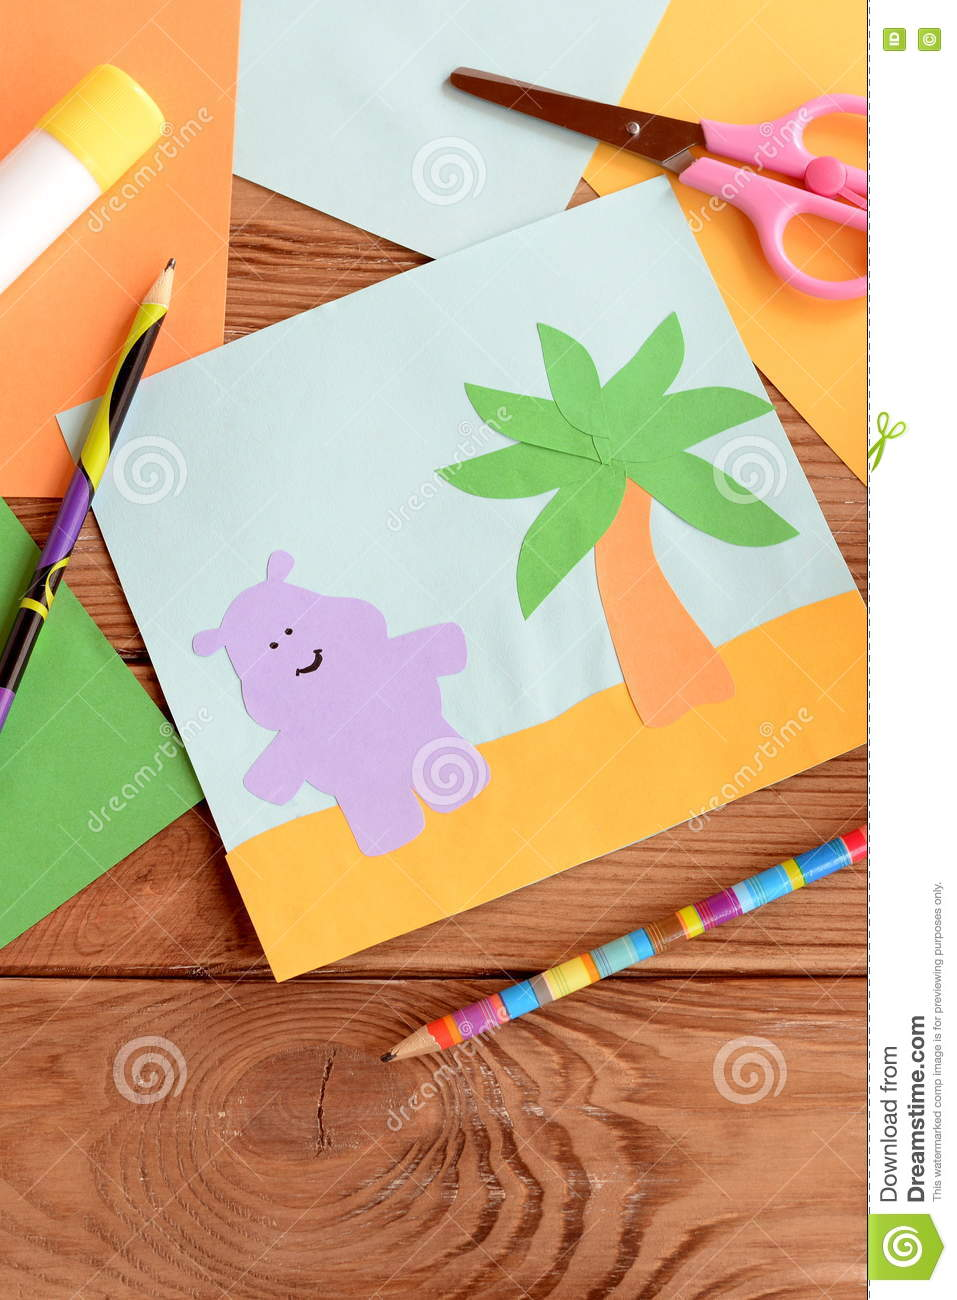 Fun Summer Card With A Hippopotamus And A Palm Tree On A Wooden